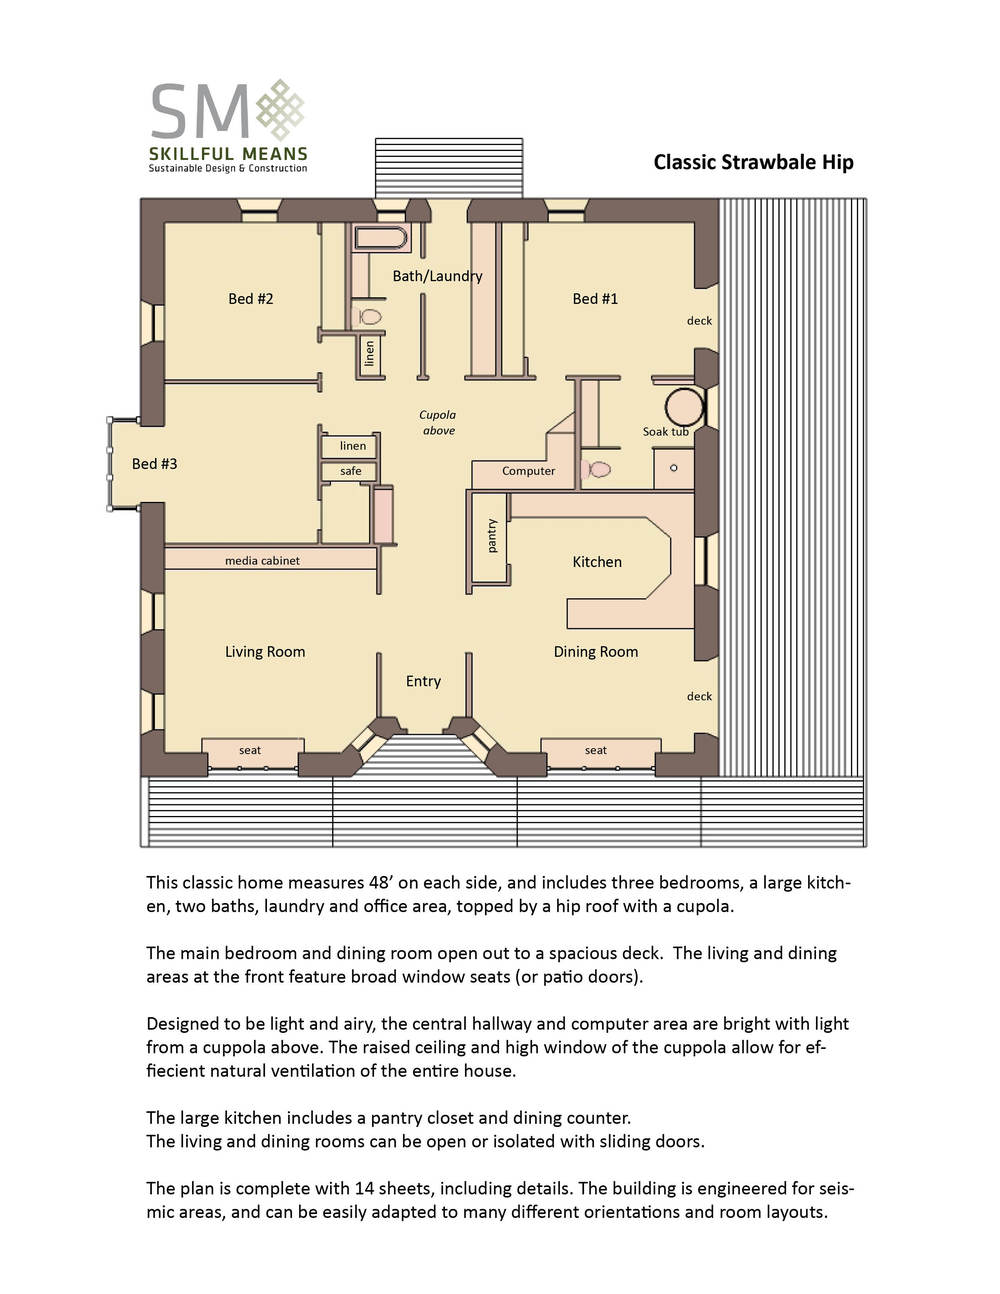 Classic square house plan skillful means design build for Classic house plans